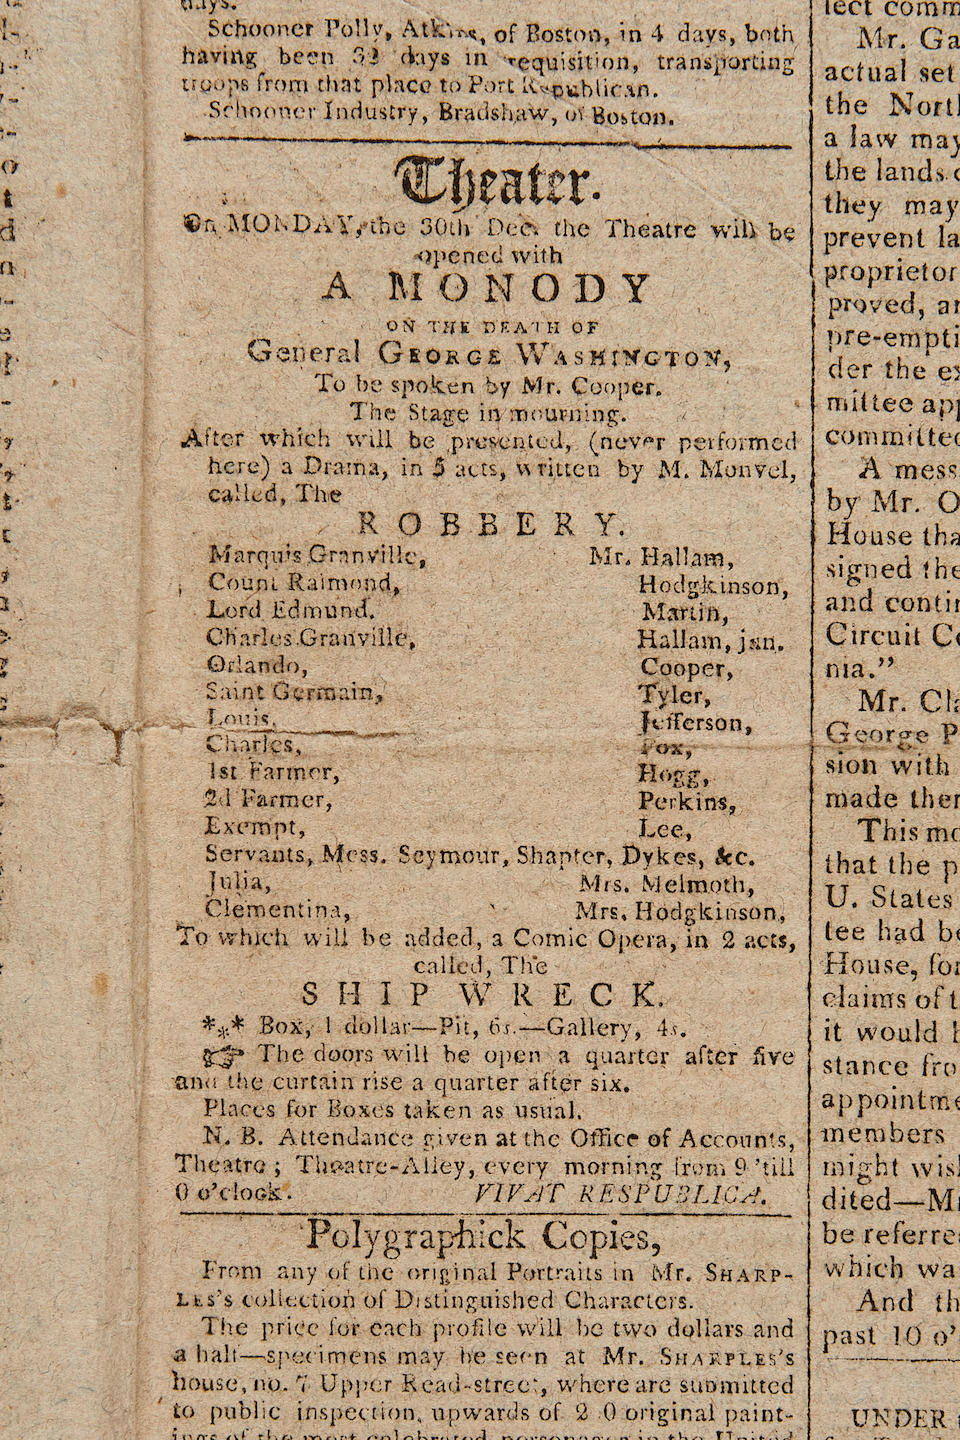 DETAILED ACCOUNT OF THE DEATH OF WASHINGTON. Commercial Advertiser, Vol III, No 691. New York: E. Belden & Co, December 27, 1799.